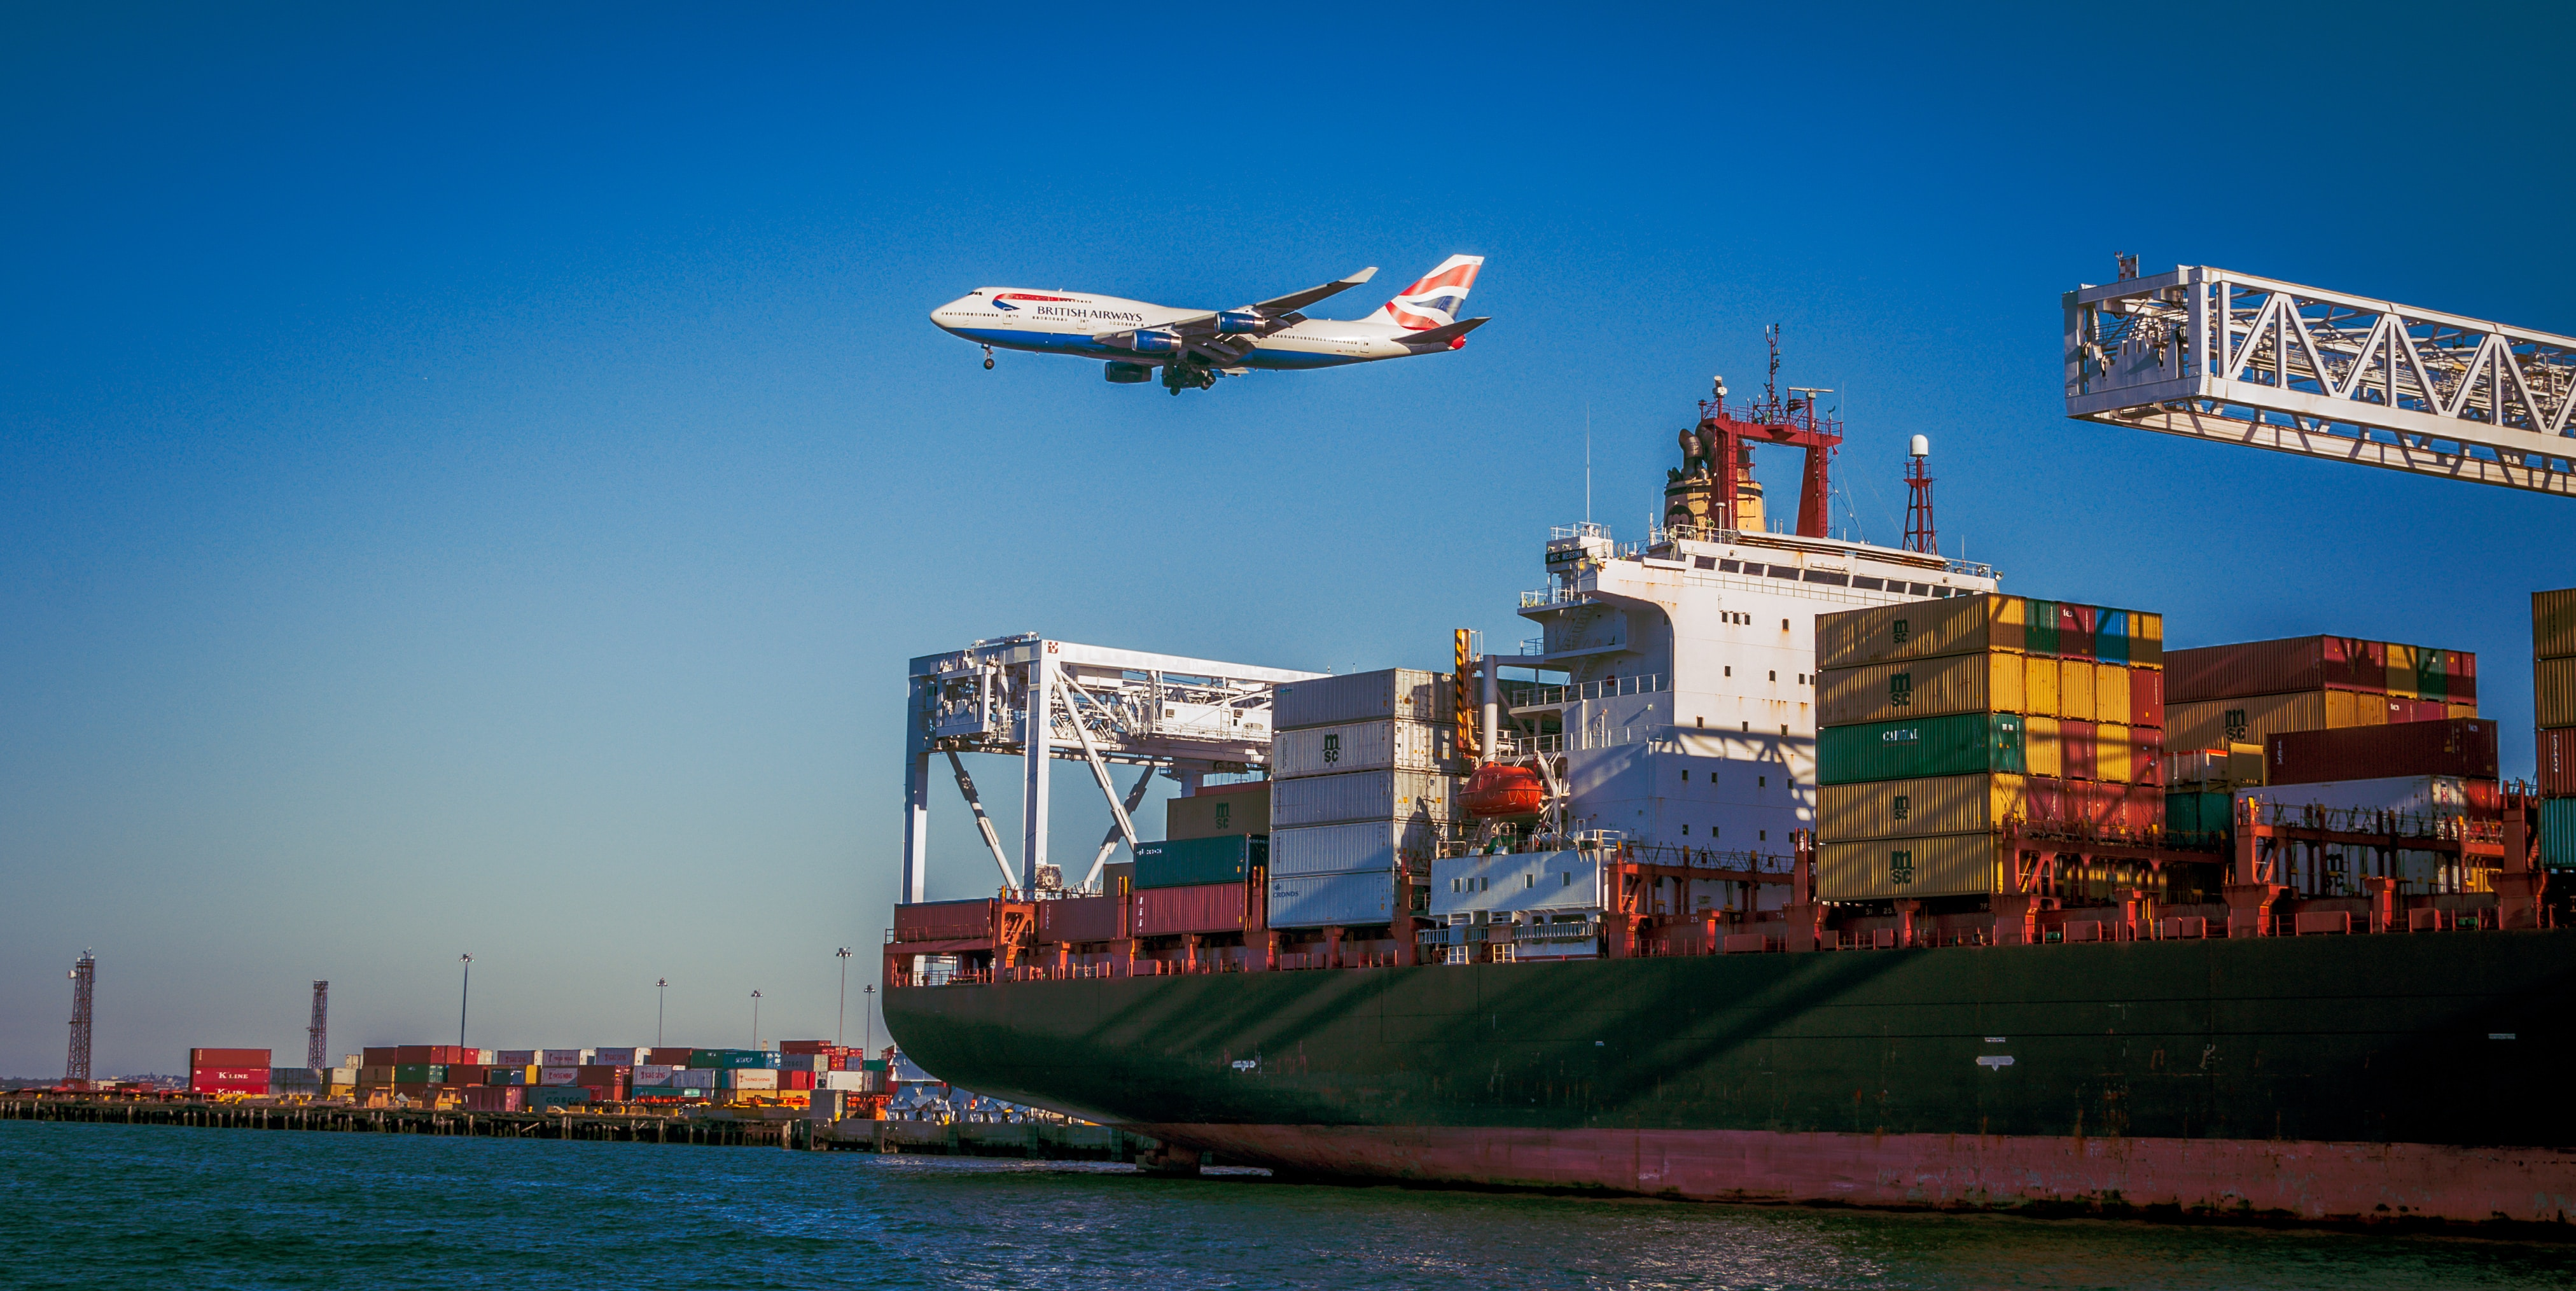 Aeroplane over container shop. Photo by VanveenJF on Unsplash.